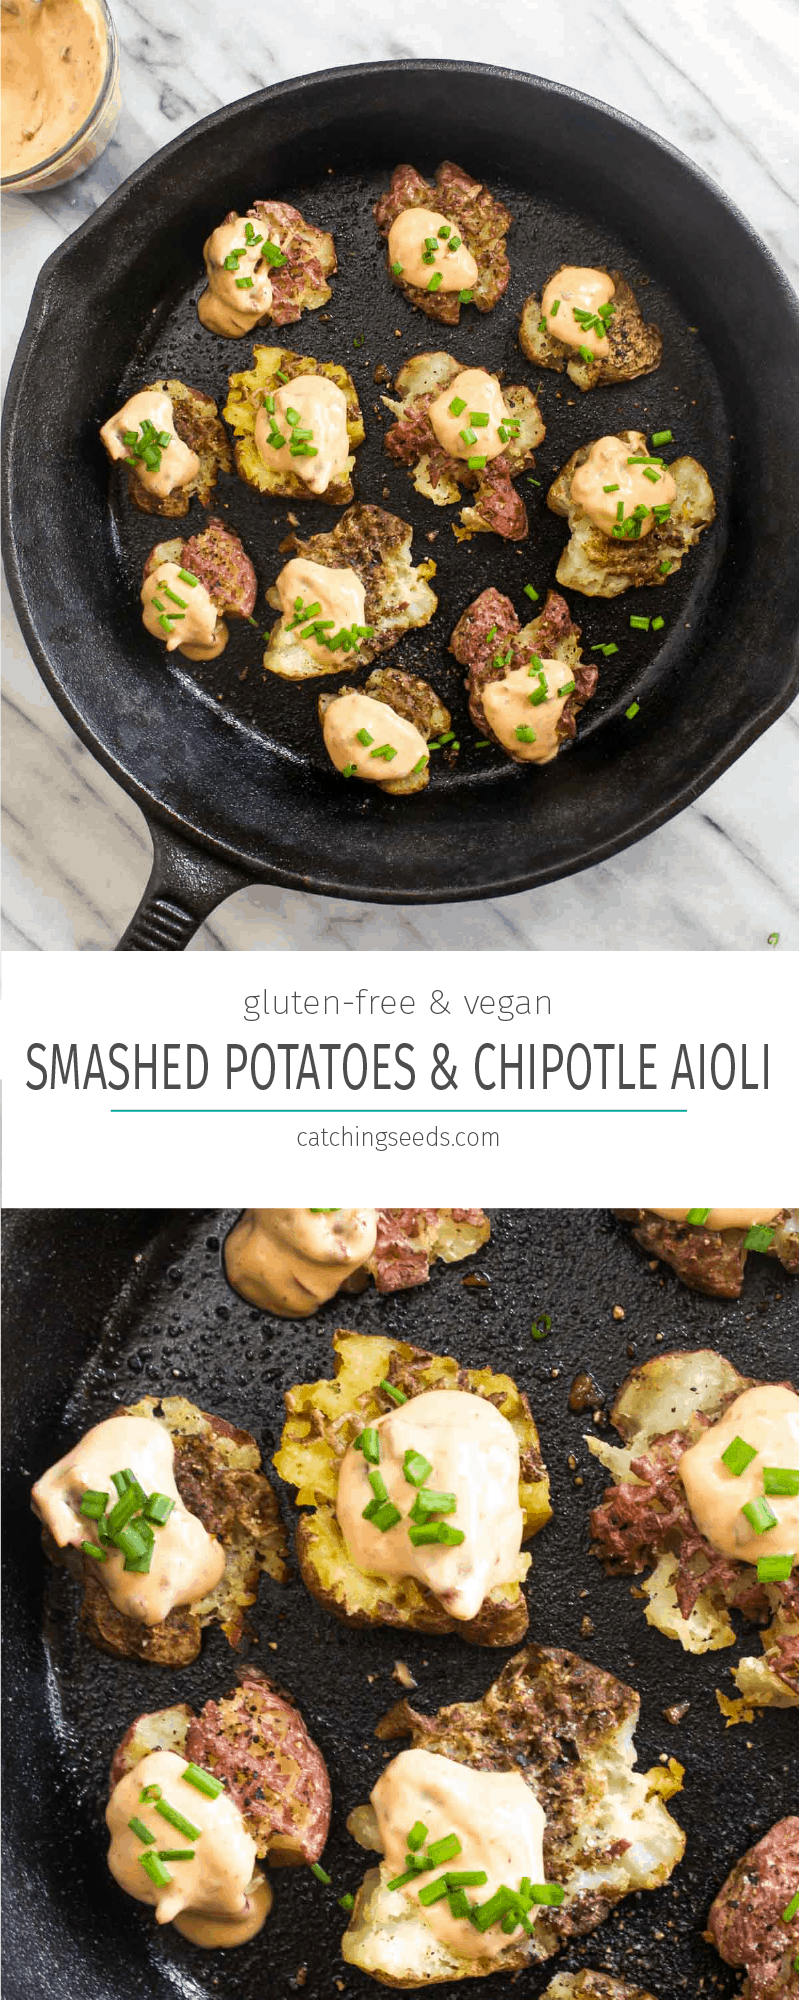 Smashed Potatoes with Chipotle Aioli are an easy 4 ingredient side recipe. Smashing the potatoes before roasting means more of those perfect crispy edges.This side is perfect for dinner or Thanksgiving! Grain-free and vegan, this is a Holiday crowd pleaser that everyone can enjoy! | CatchingSeeds.com